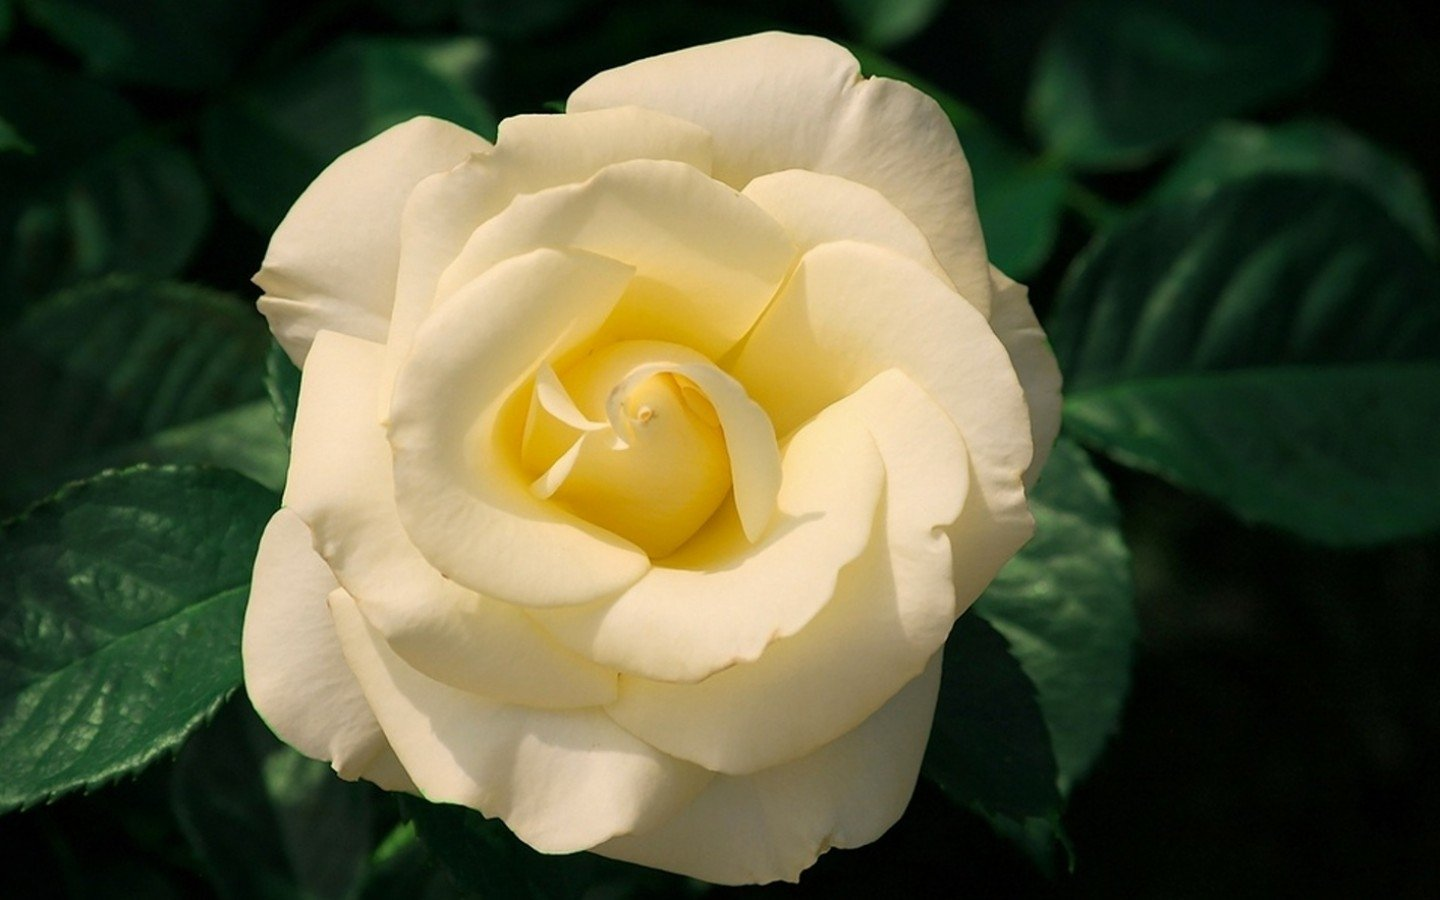 Earth - Rose  White Flower Earth Flower White Rose Leaf Wallpaper